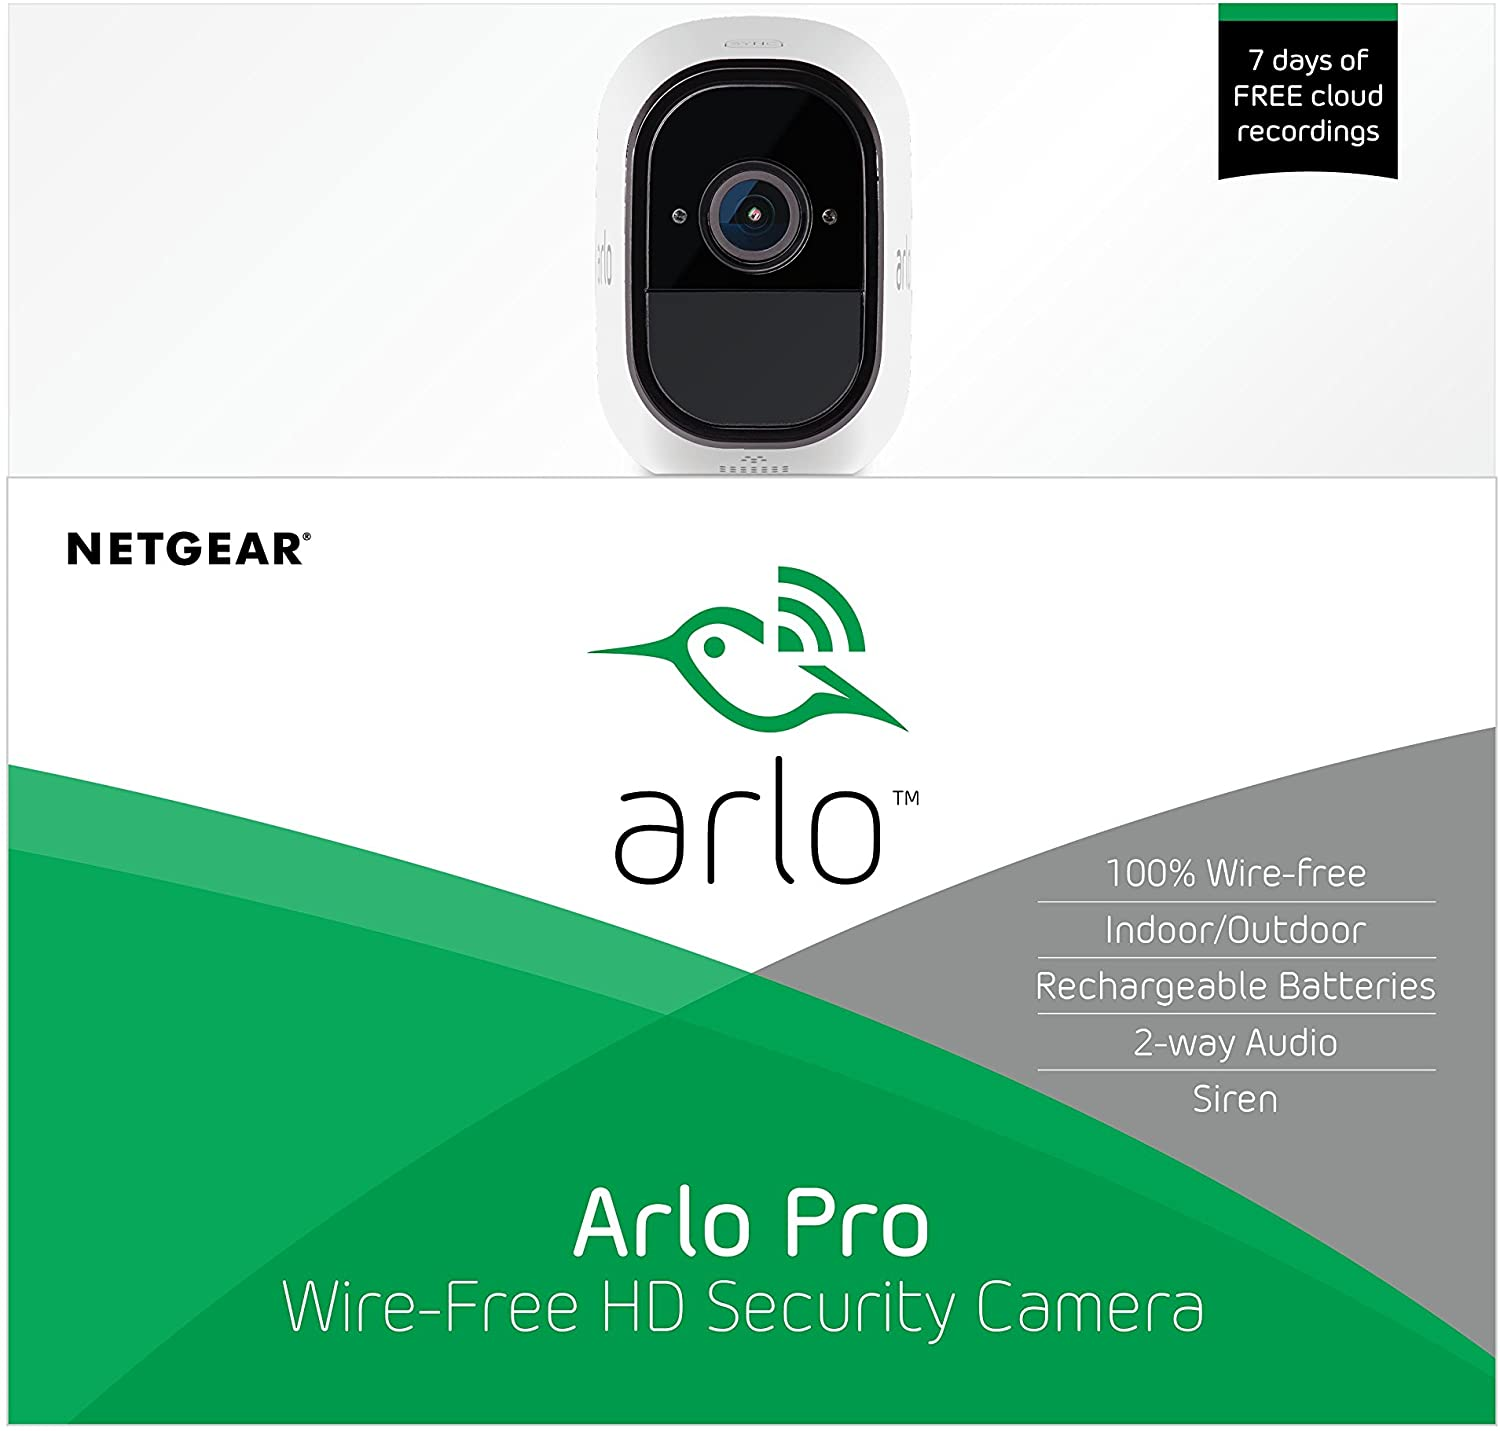 Arlo Pro Wire-Free HD Home Security 2 Camera System VMS4330 Intro